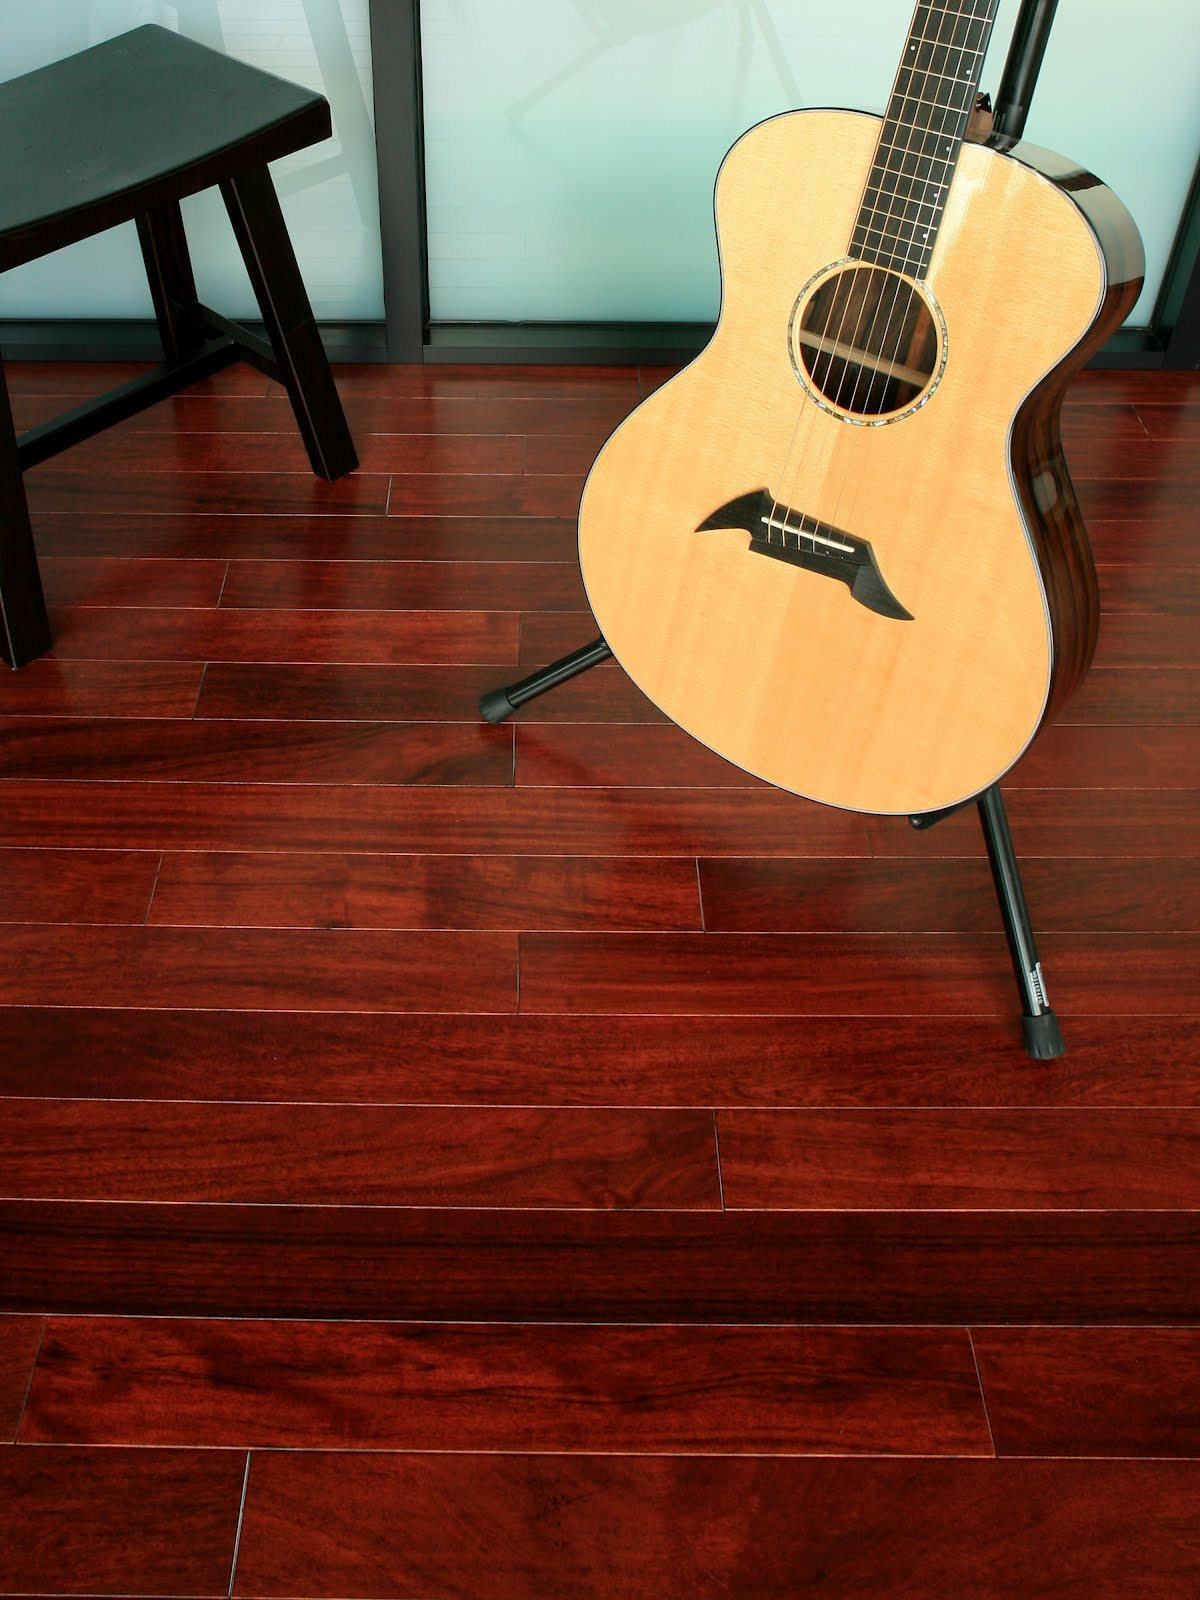 hardwood floor refinishing kent wa of stone wood design center high quality products and expert design within patagonian rosewood flooring